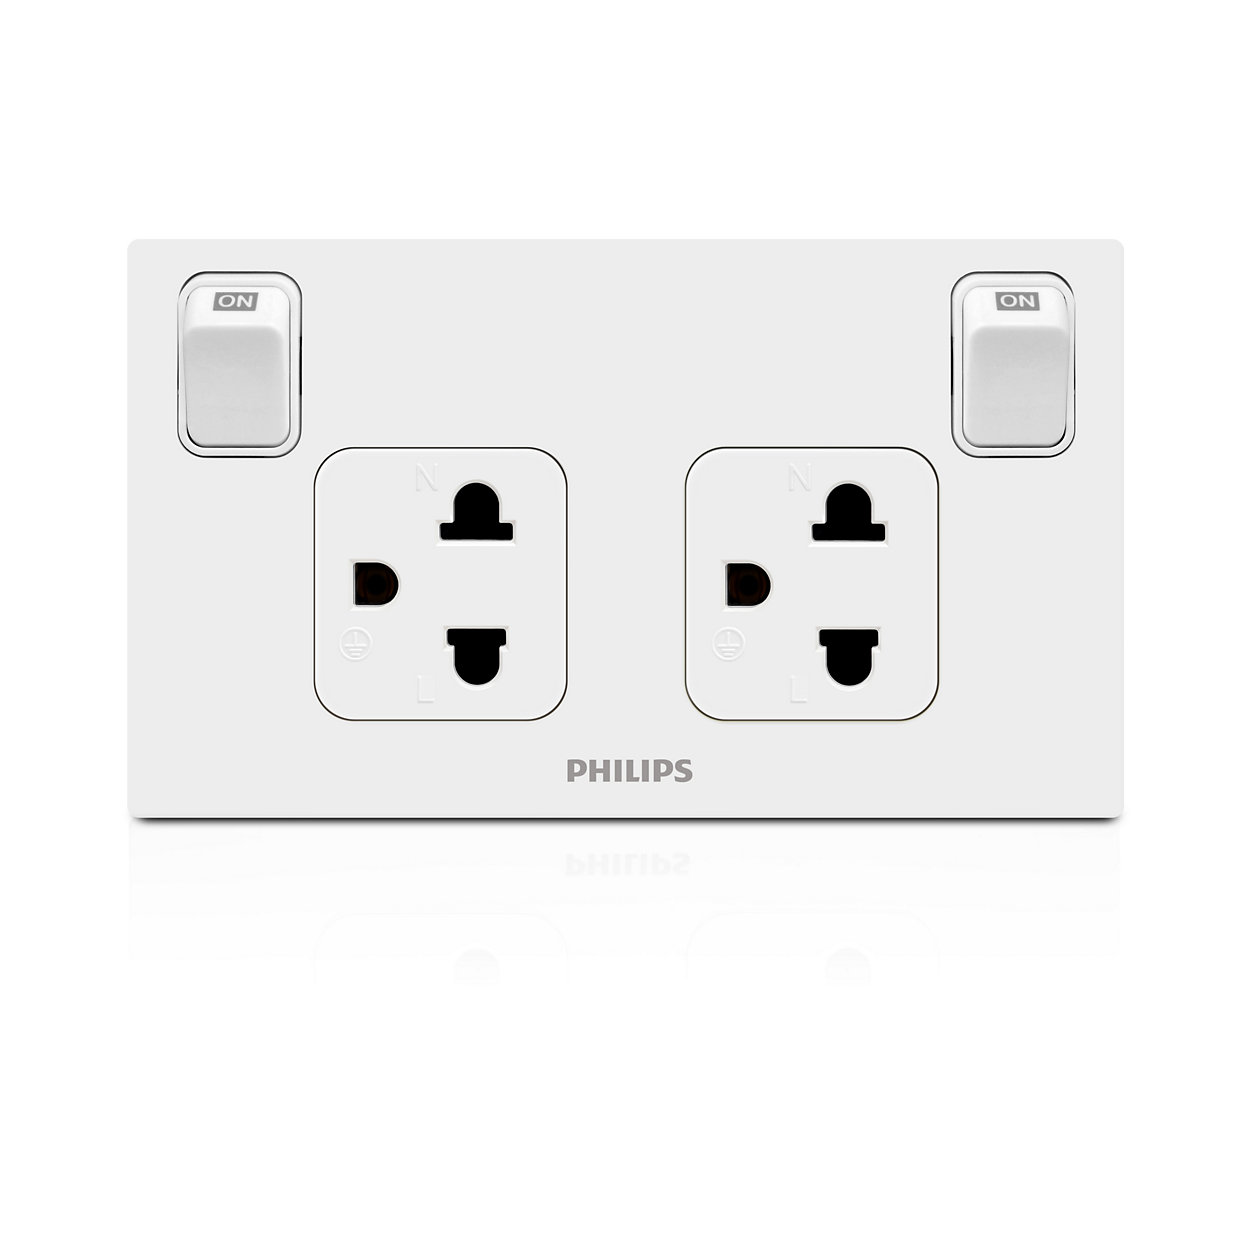 High quality switch and socket designed to safely last for years